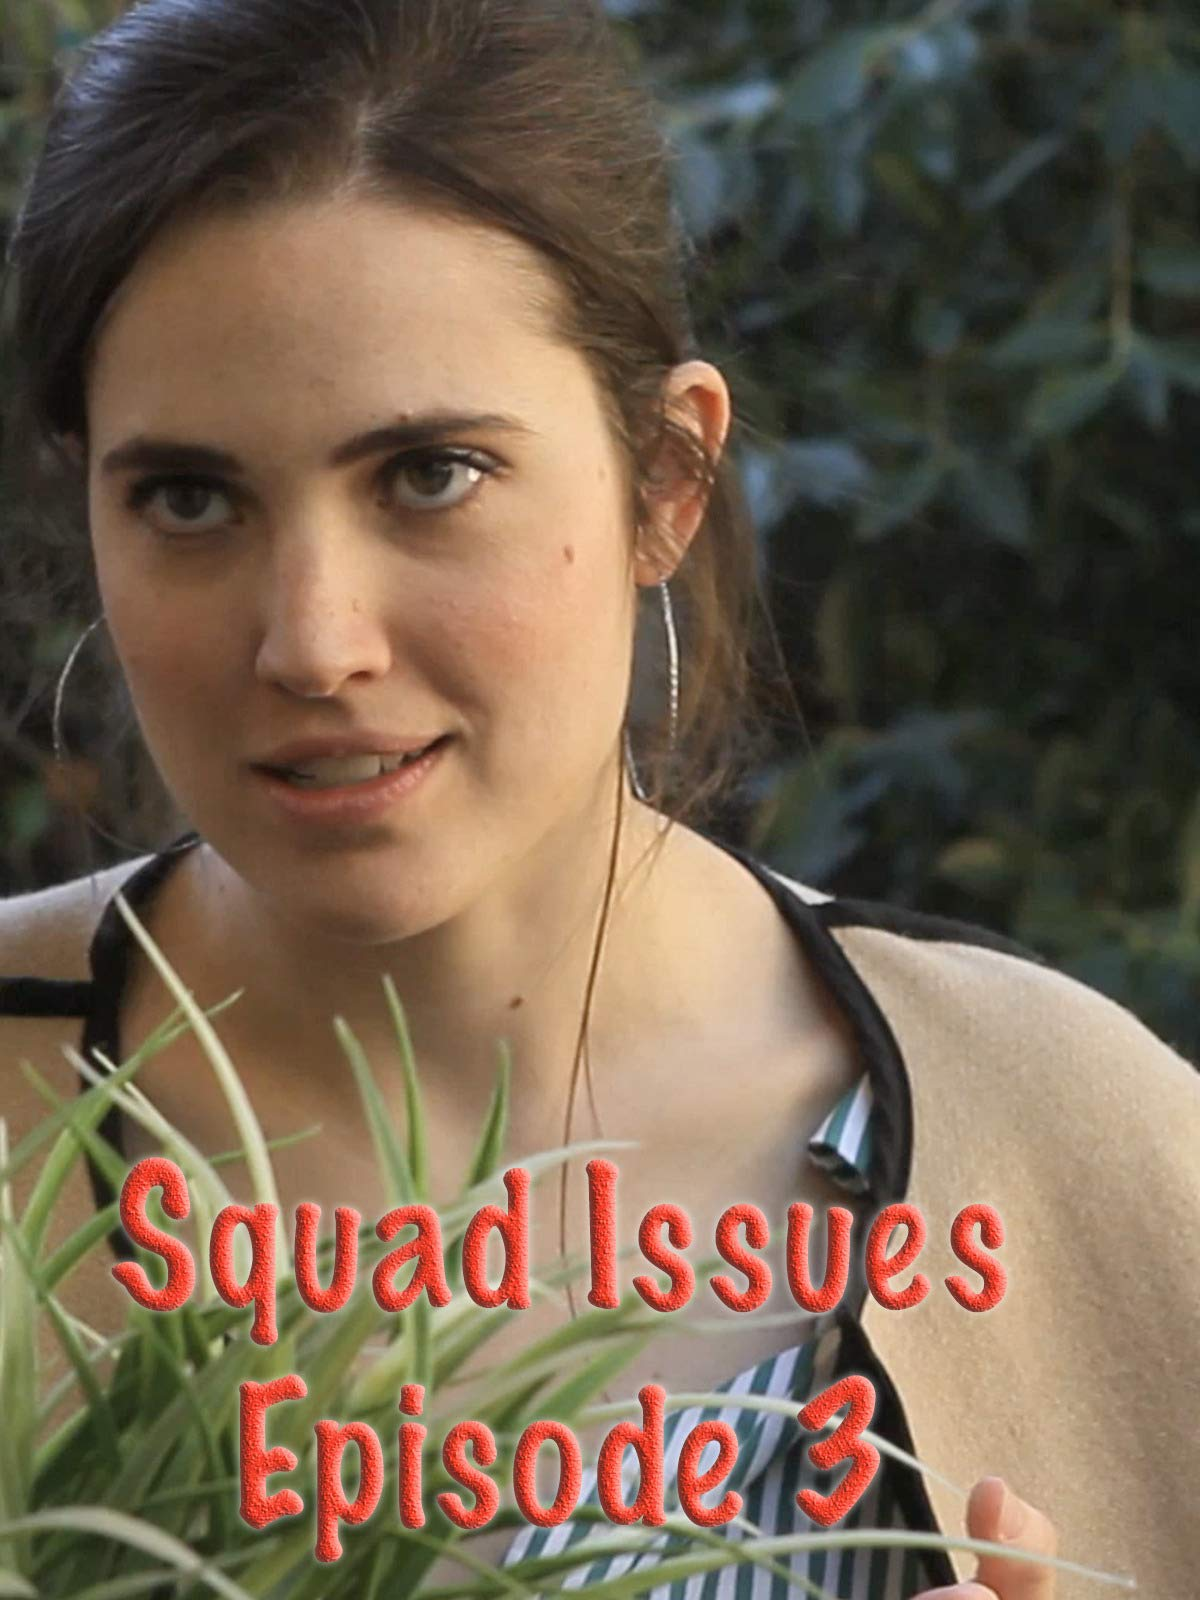 Clip: Squad Issues Episode 3